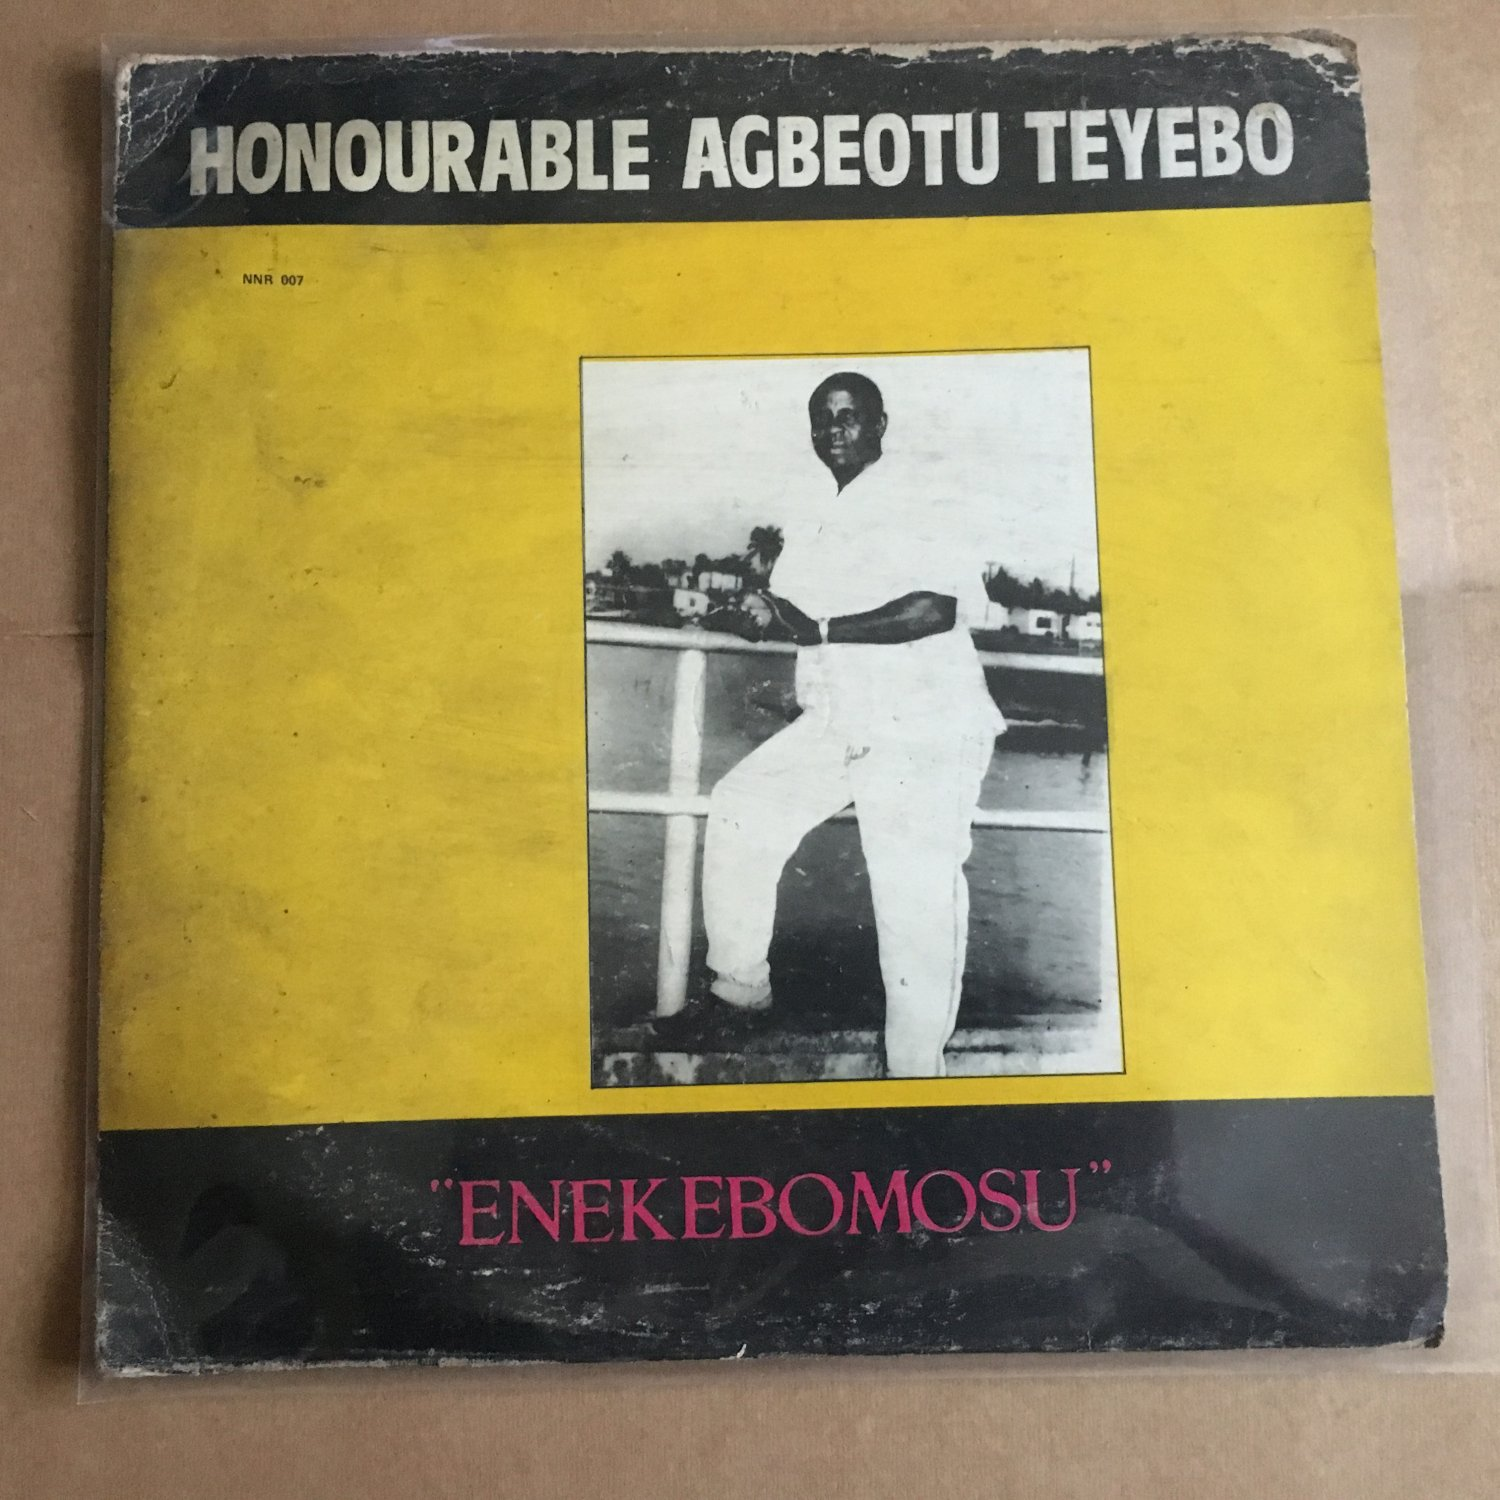 AGBEOTU TEIYEBO LP enekebomosu NIGERIA IZON HIGHLIFE mp3 LISTEN